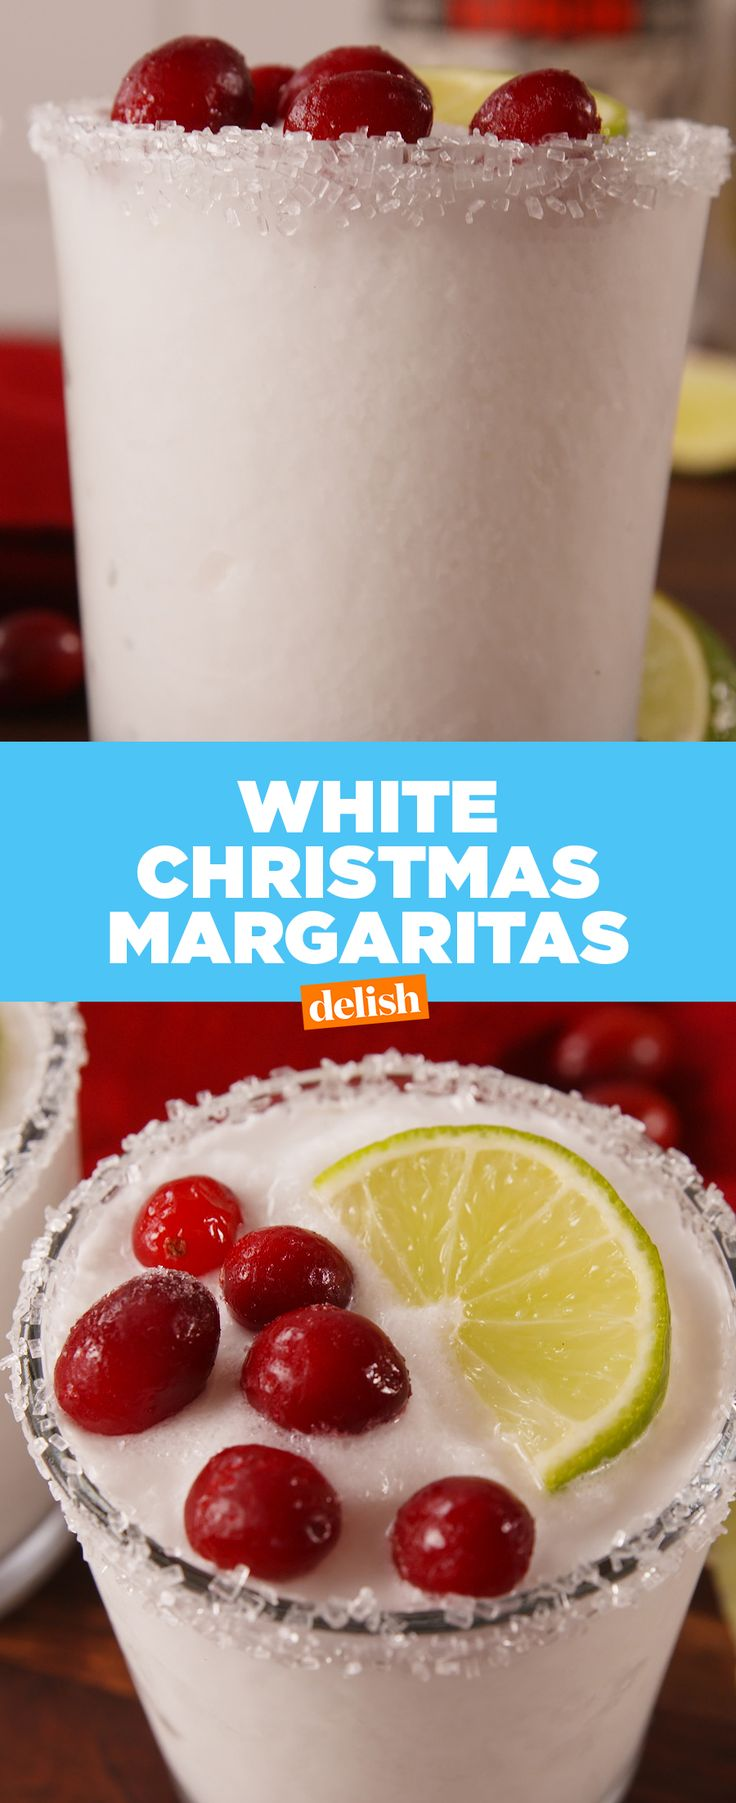 White Christmas Margaritas